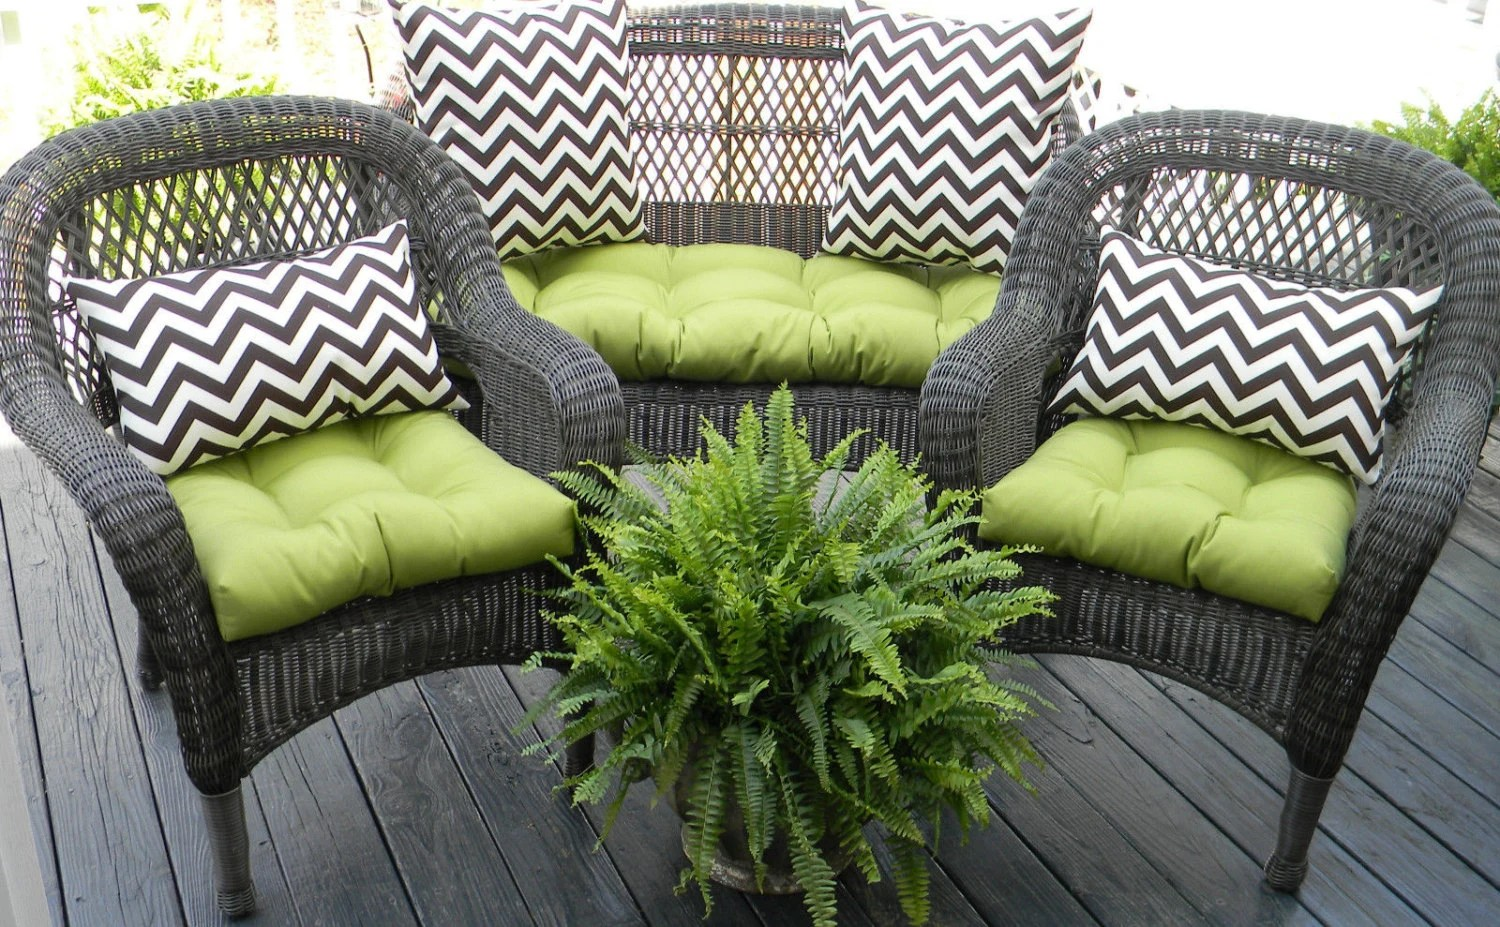 Outdoor Wicker Cushion And Pillow 7 Pc. Set Solid Kiwi Green